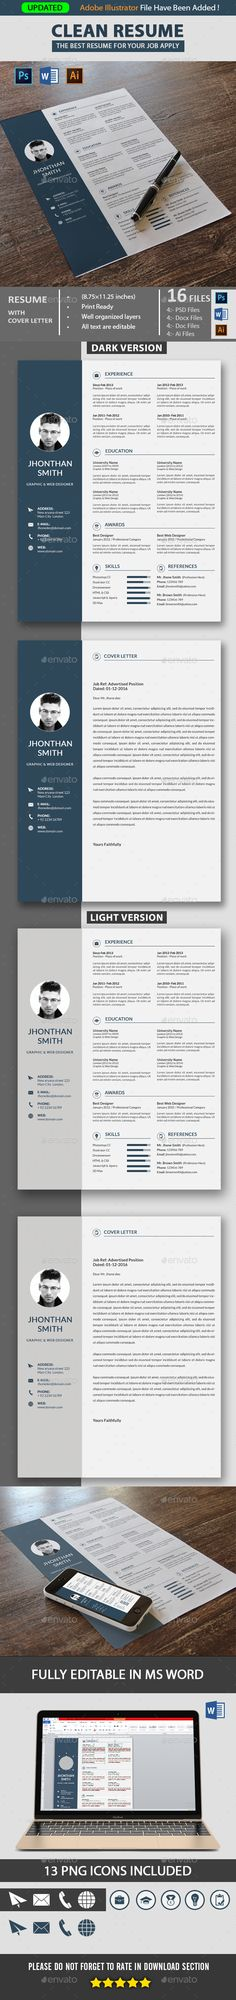 Professional Resume Template.Get your modern resume template for your job. This Resume template is clearly organized and labeled so you can be confident in getting the best results in the fast possible time. This resume file is in the Adobe Photoshop, MS Word and Adobe Illustrator so you can use program that you wish to edit the resume, and cover Letter.